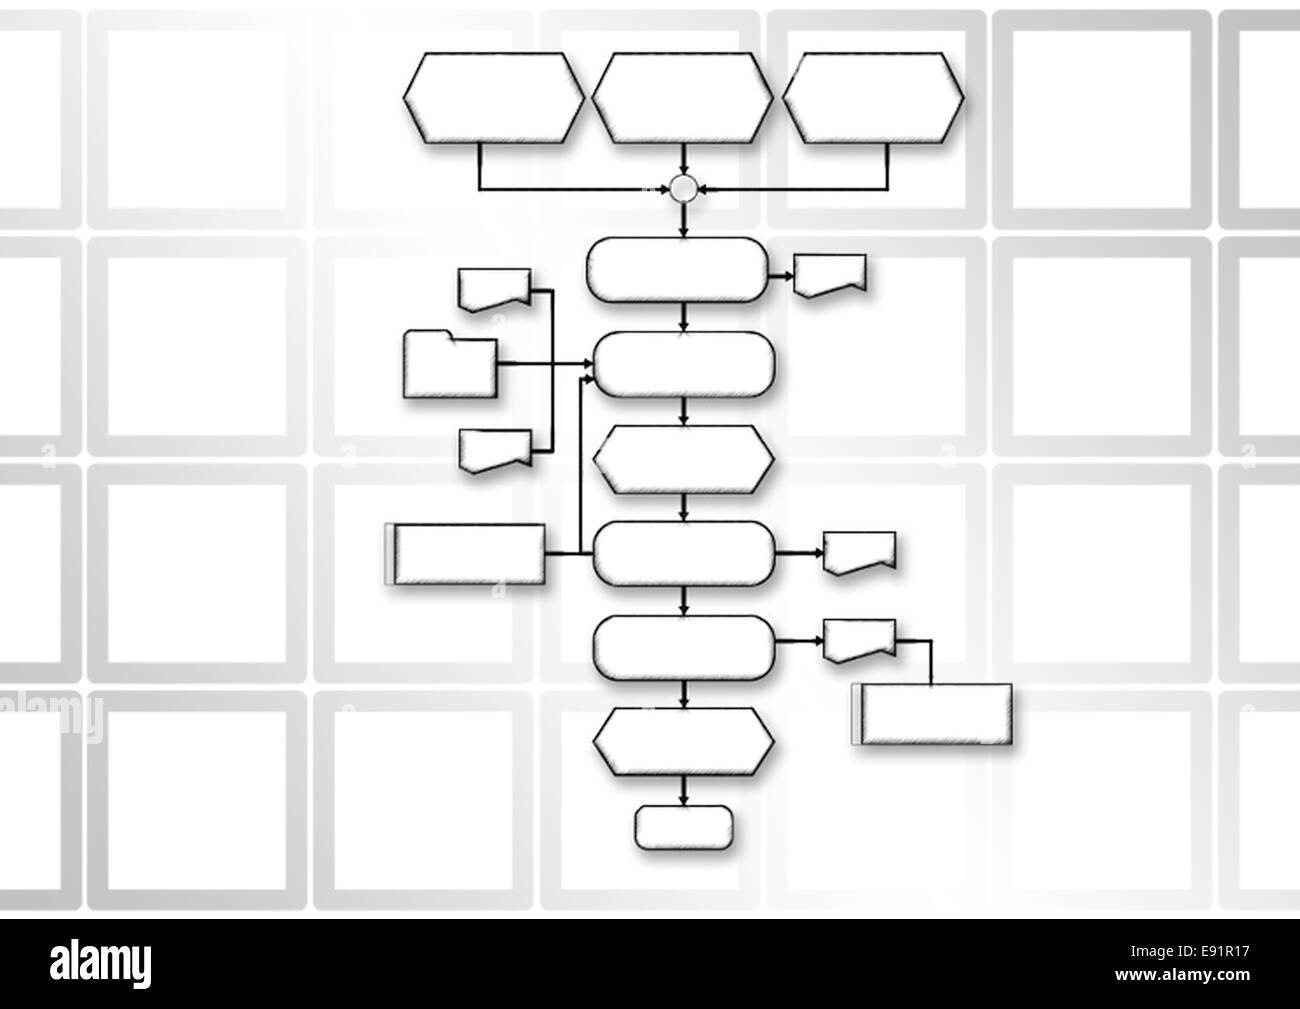 hight resolution of flow chart programming process stock image